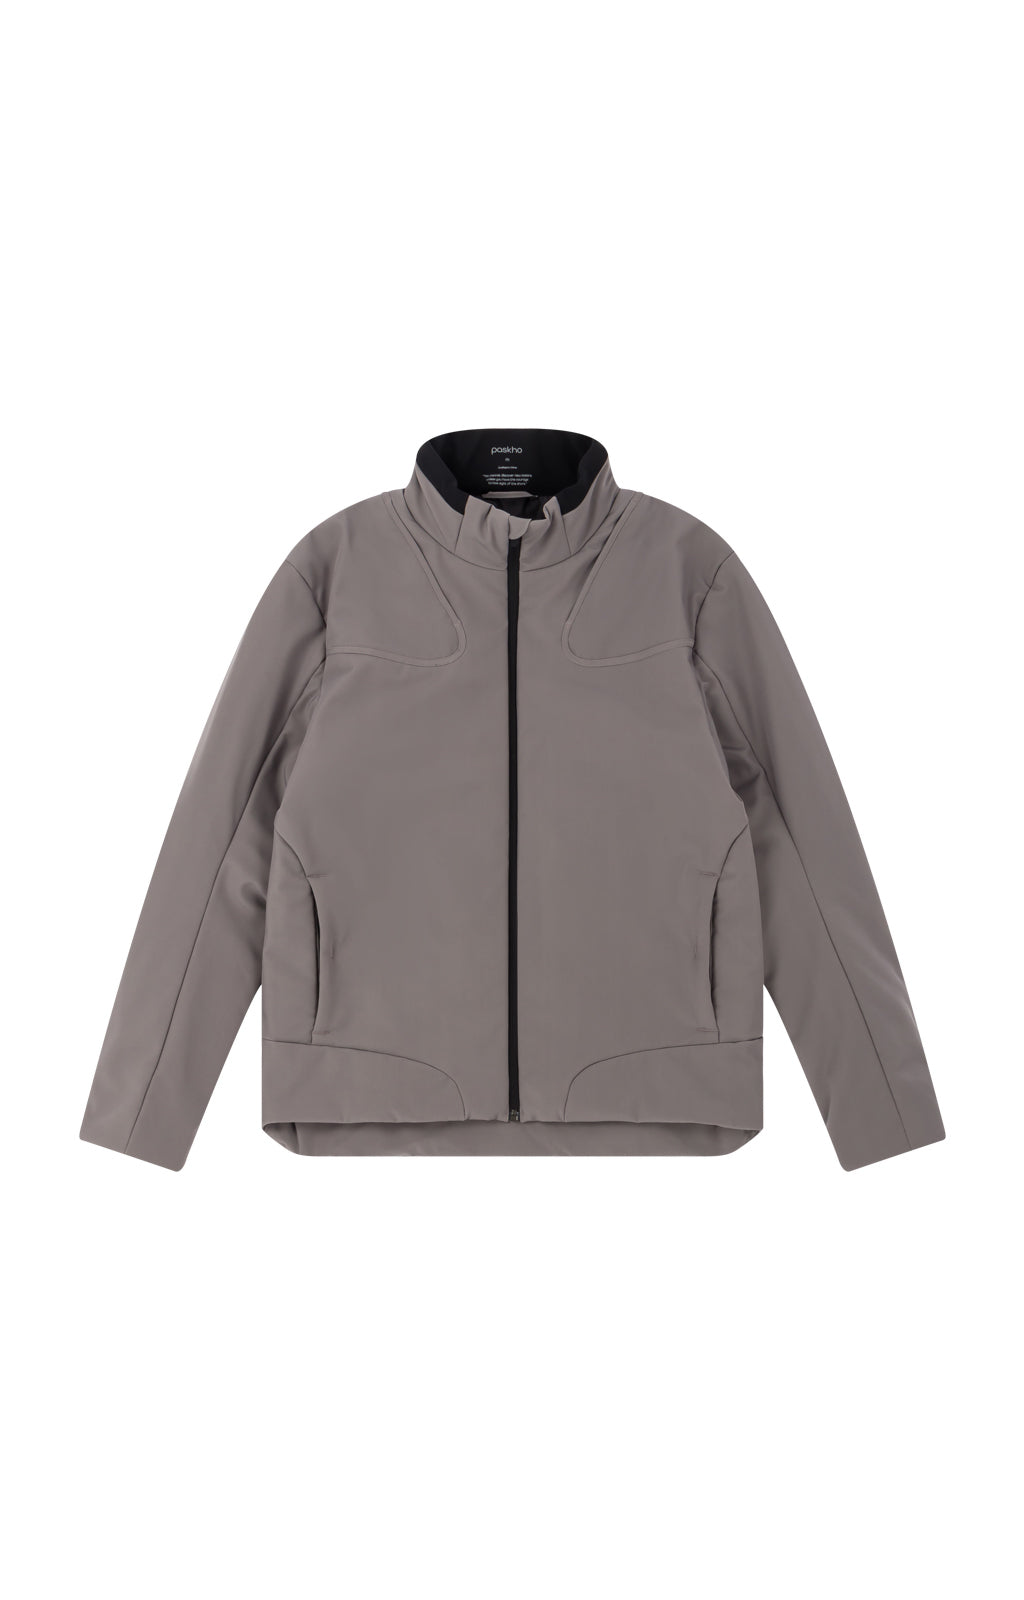 Encounter - Travel Bomber Jacket in Sepia